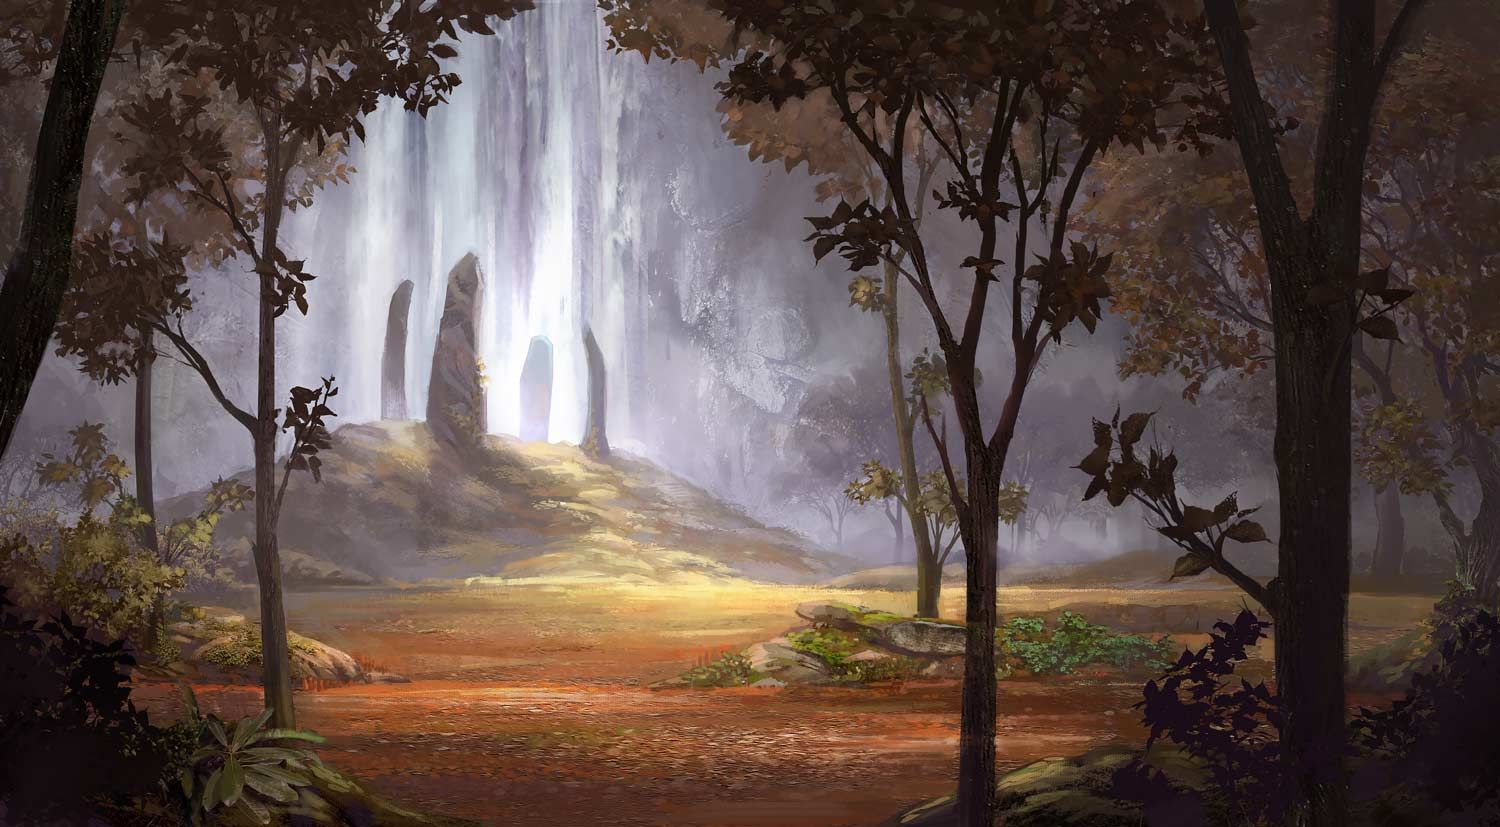 Standing-stones by Kaeriya forest autumn fall clearing Stonehenge portal gateway landscape location environment architecture   Create your own roleplaying game material w/ RPG Bard: www.rpgbard.com   Writing inspiration for Dungeons and Dragons DND D&D Pathfinder PFRPG Warhammer 40k Star Wars Shadowrun Call of Cthulhu Lord of the Rings LoTR + d20 fantasy science fiction scifi horror design   Not Trusty Sword art: click artwork for source